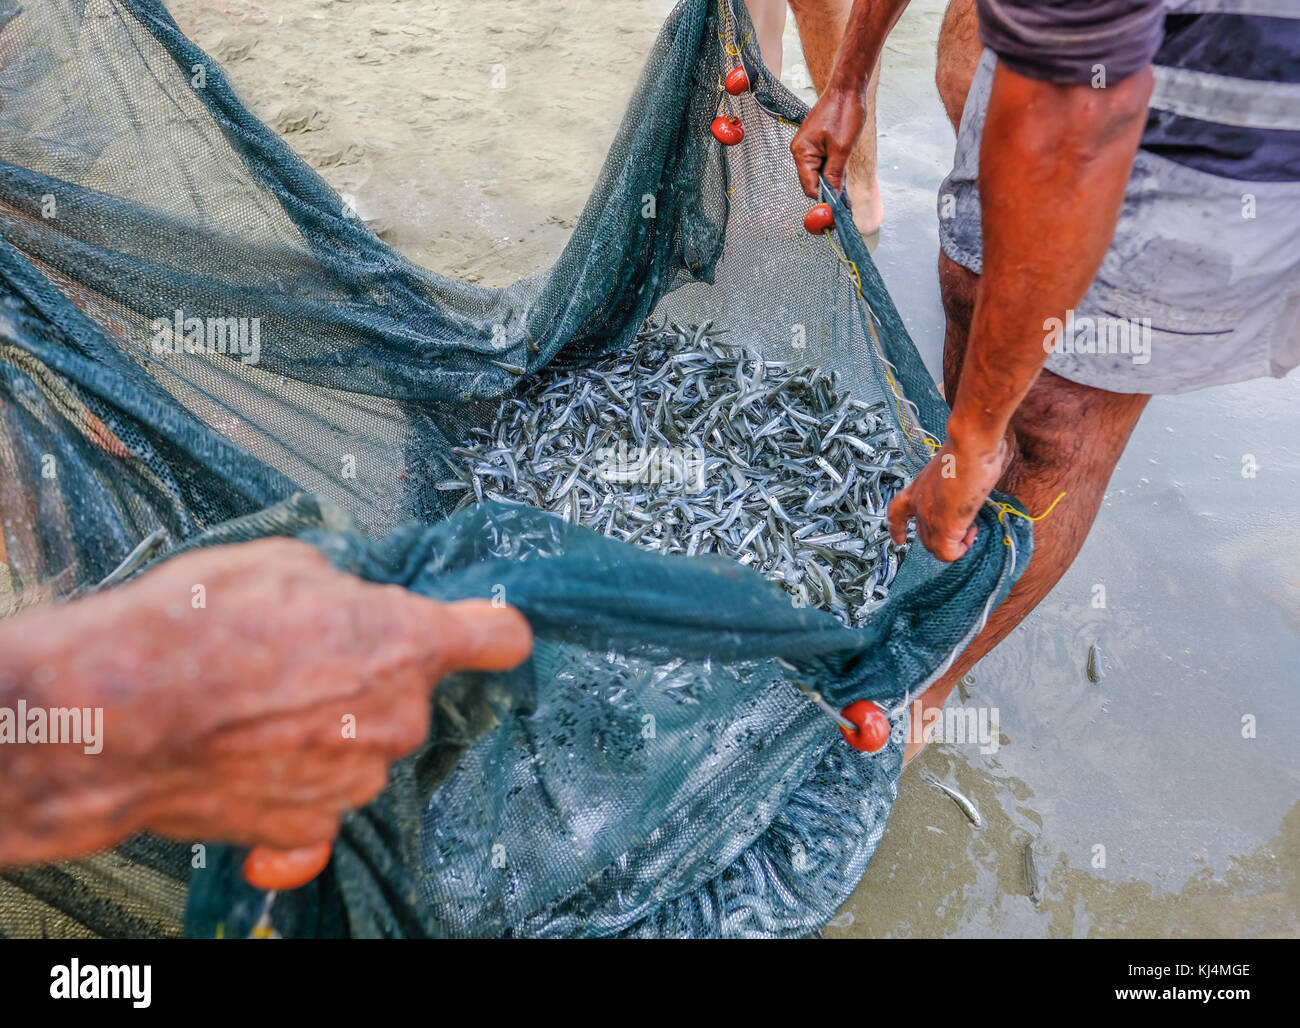 Shoal of whitebait fish caught in a net at the edge of the sea on the beach. Close up shot with strong hands holding - Stock Image